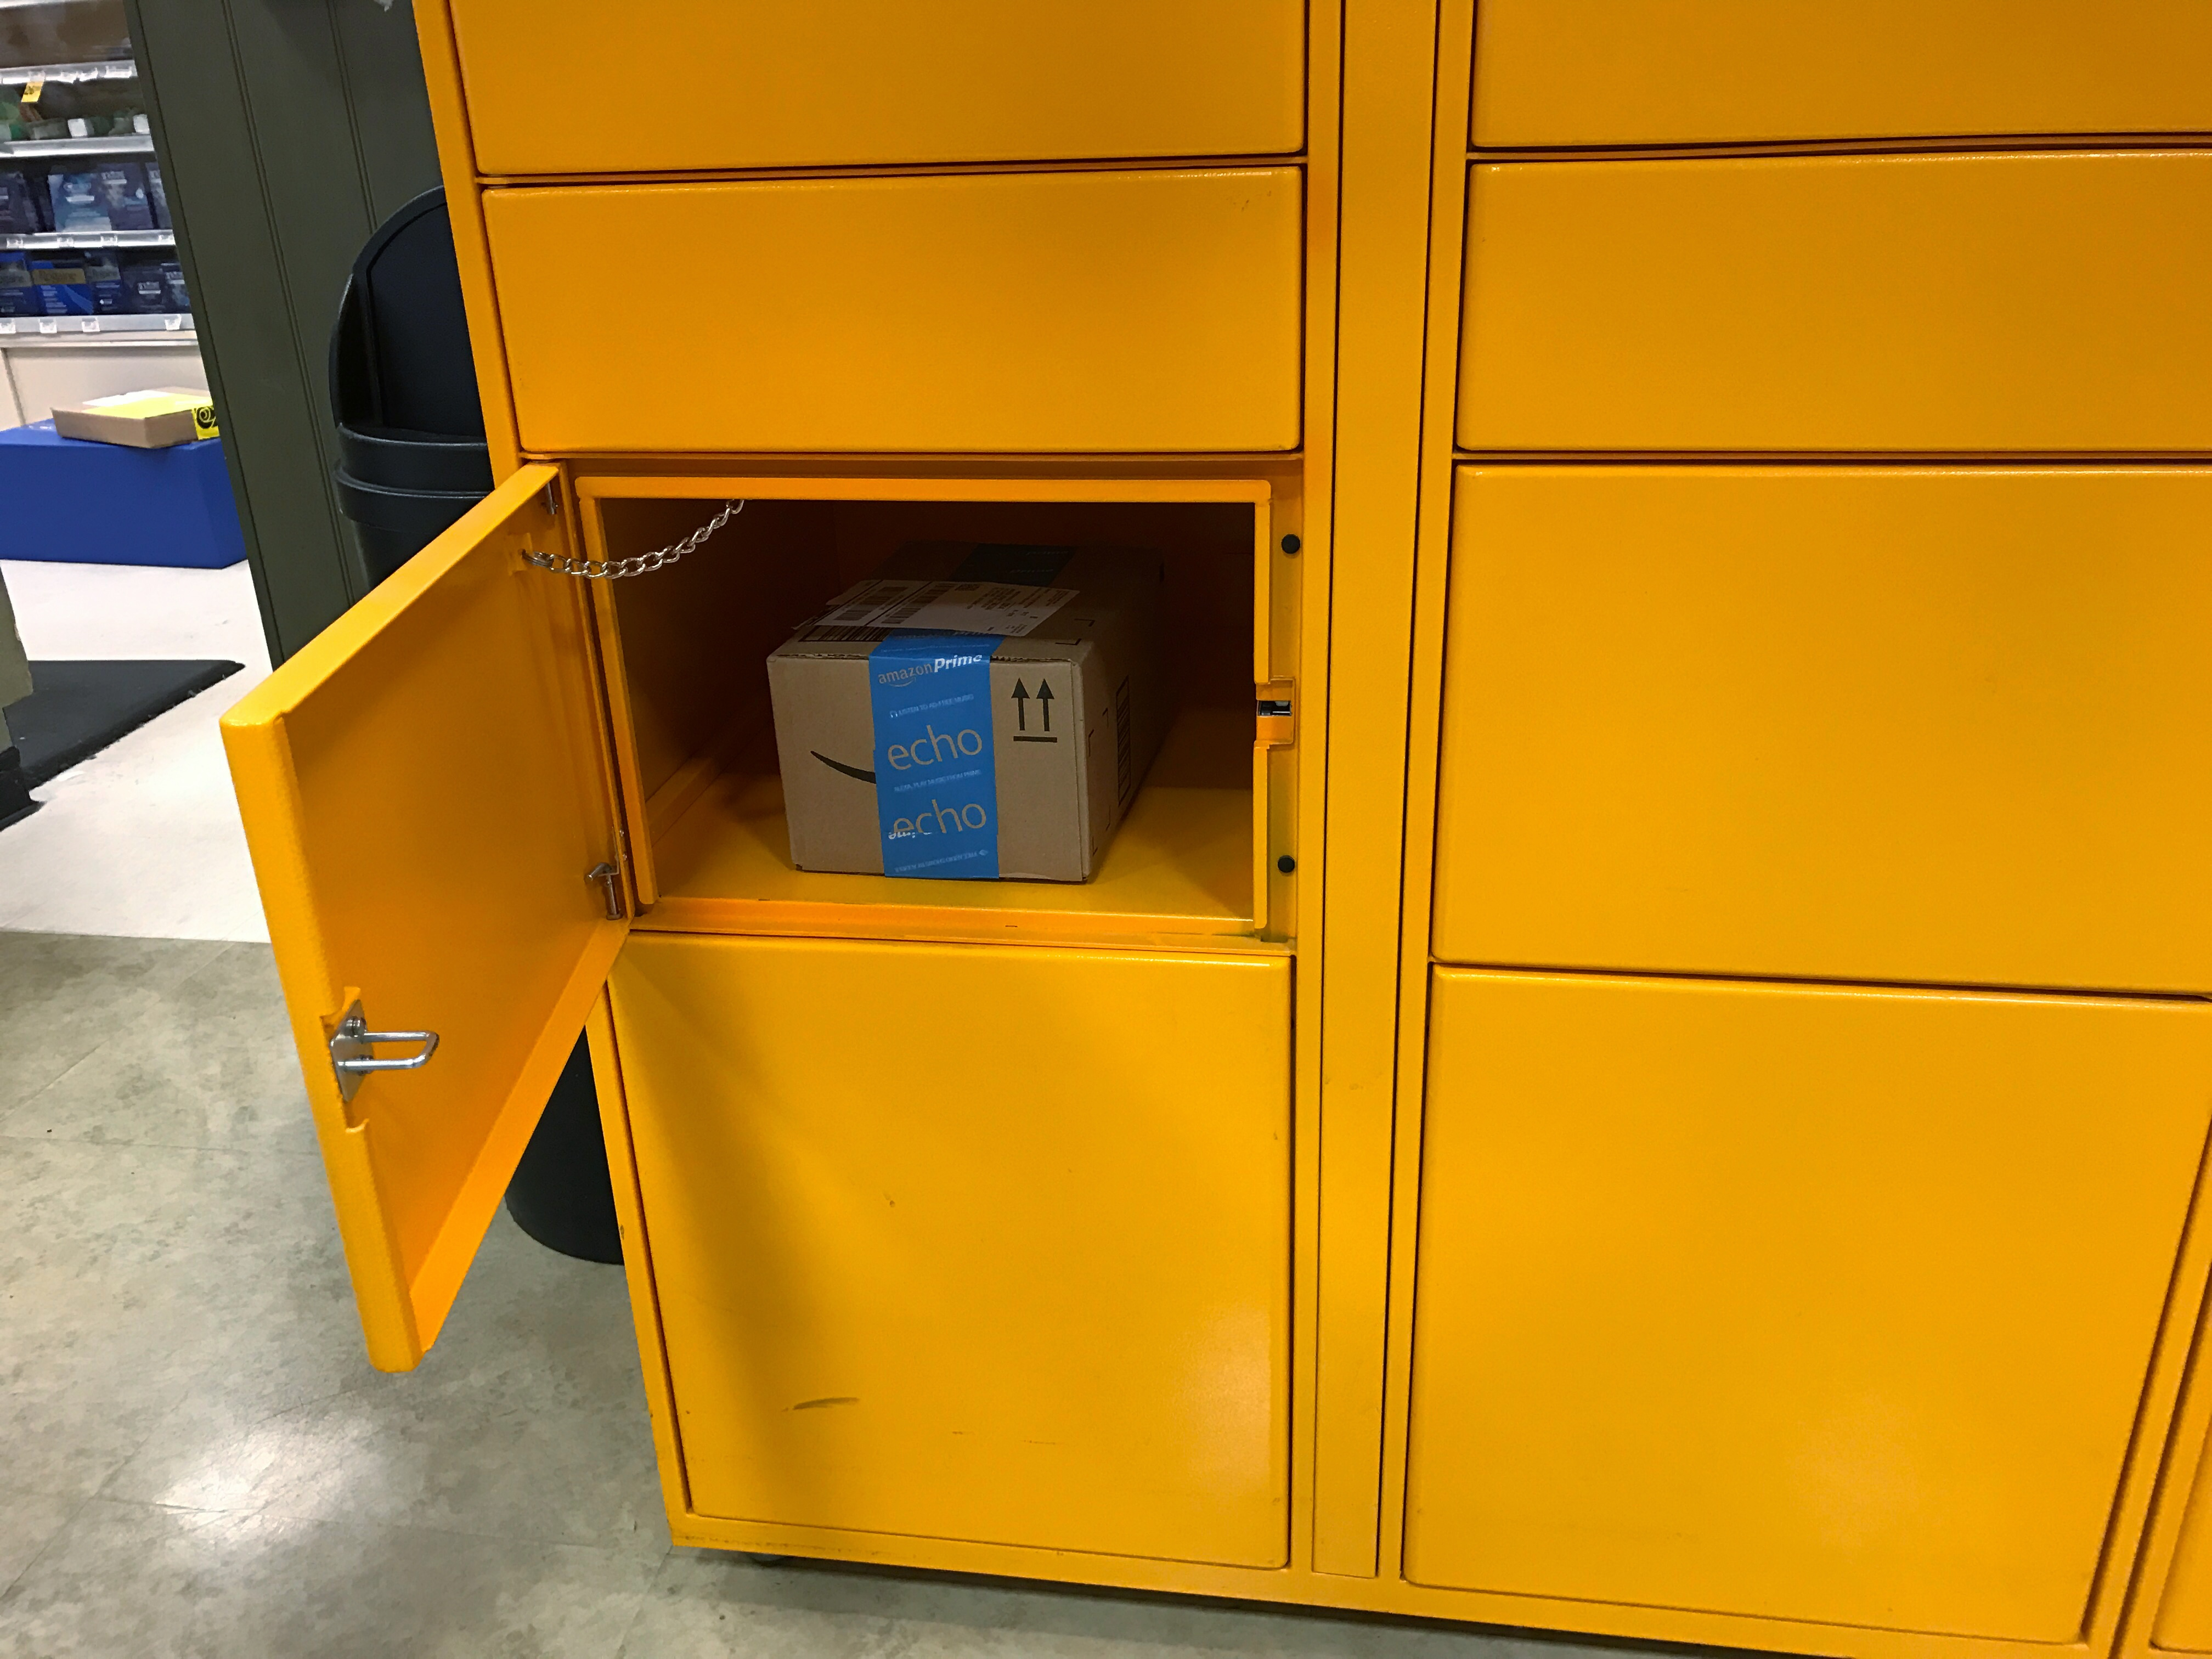 Detail view of opened Amazon locker with package inside the compartment